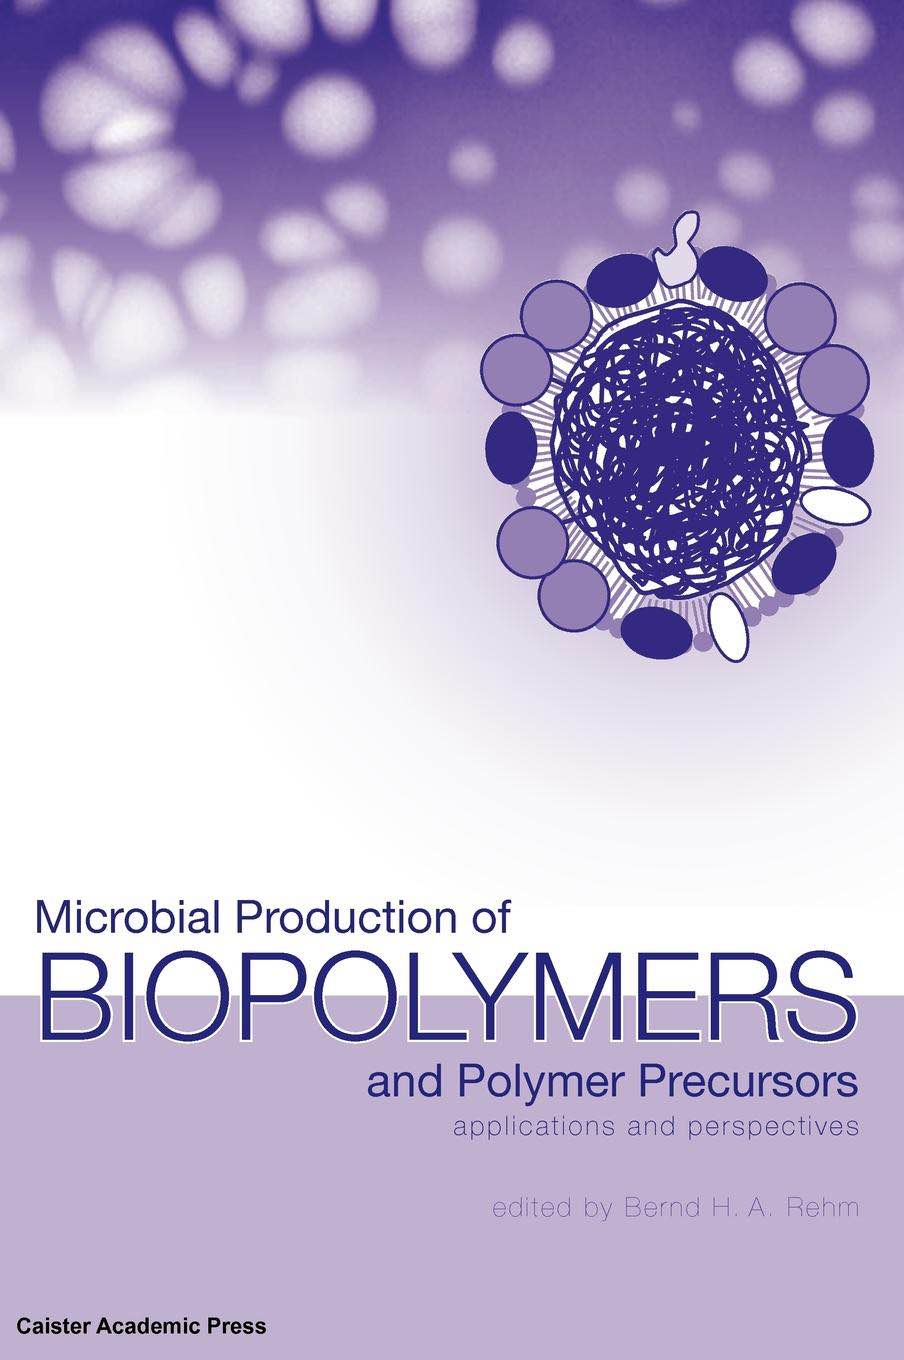 Microbial Production of Biopolymers and Polymer Precursors: Applications and Perspectives